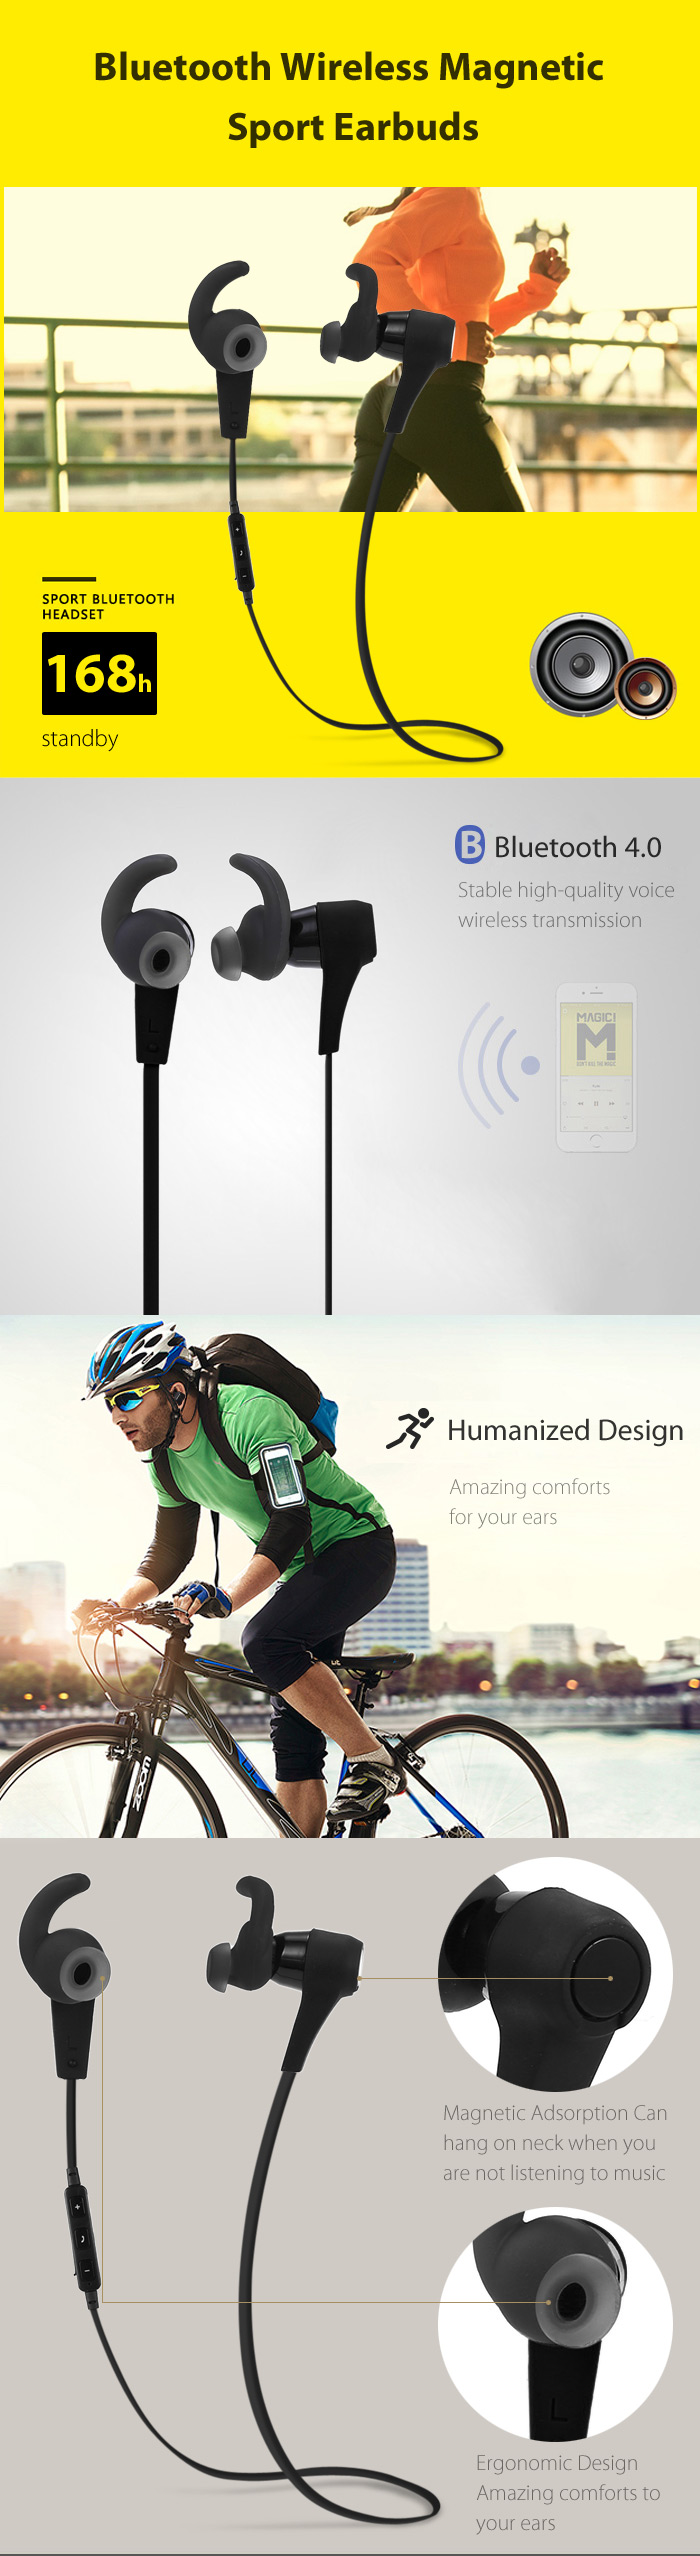 Wireless Bluetooth Magnetic Earbuds for Sports with Phones Answer Function